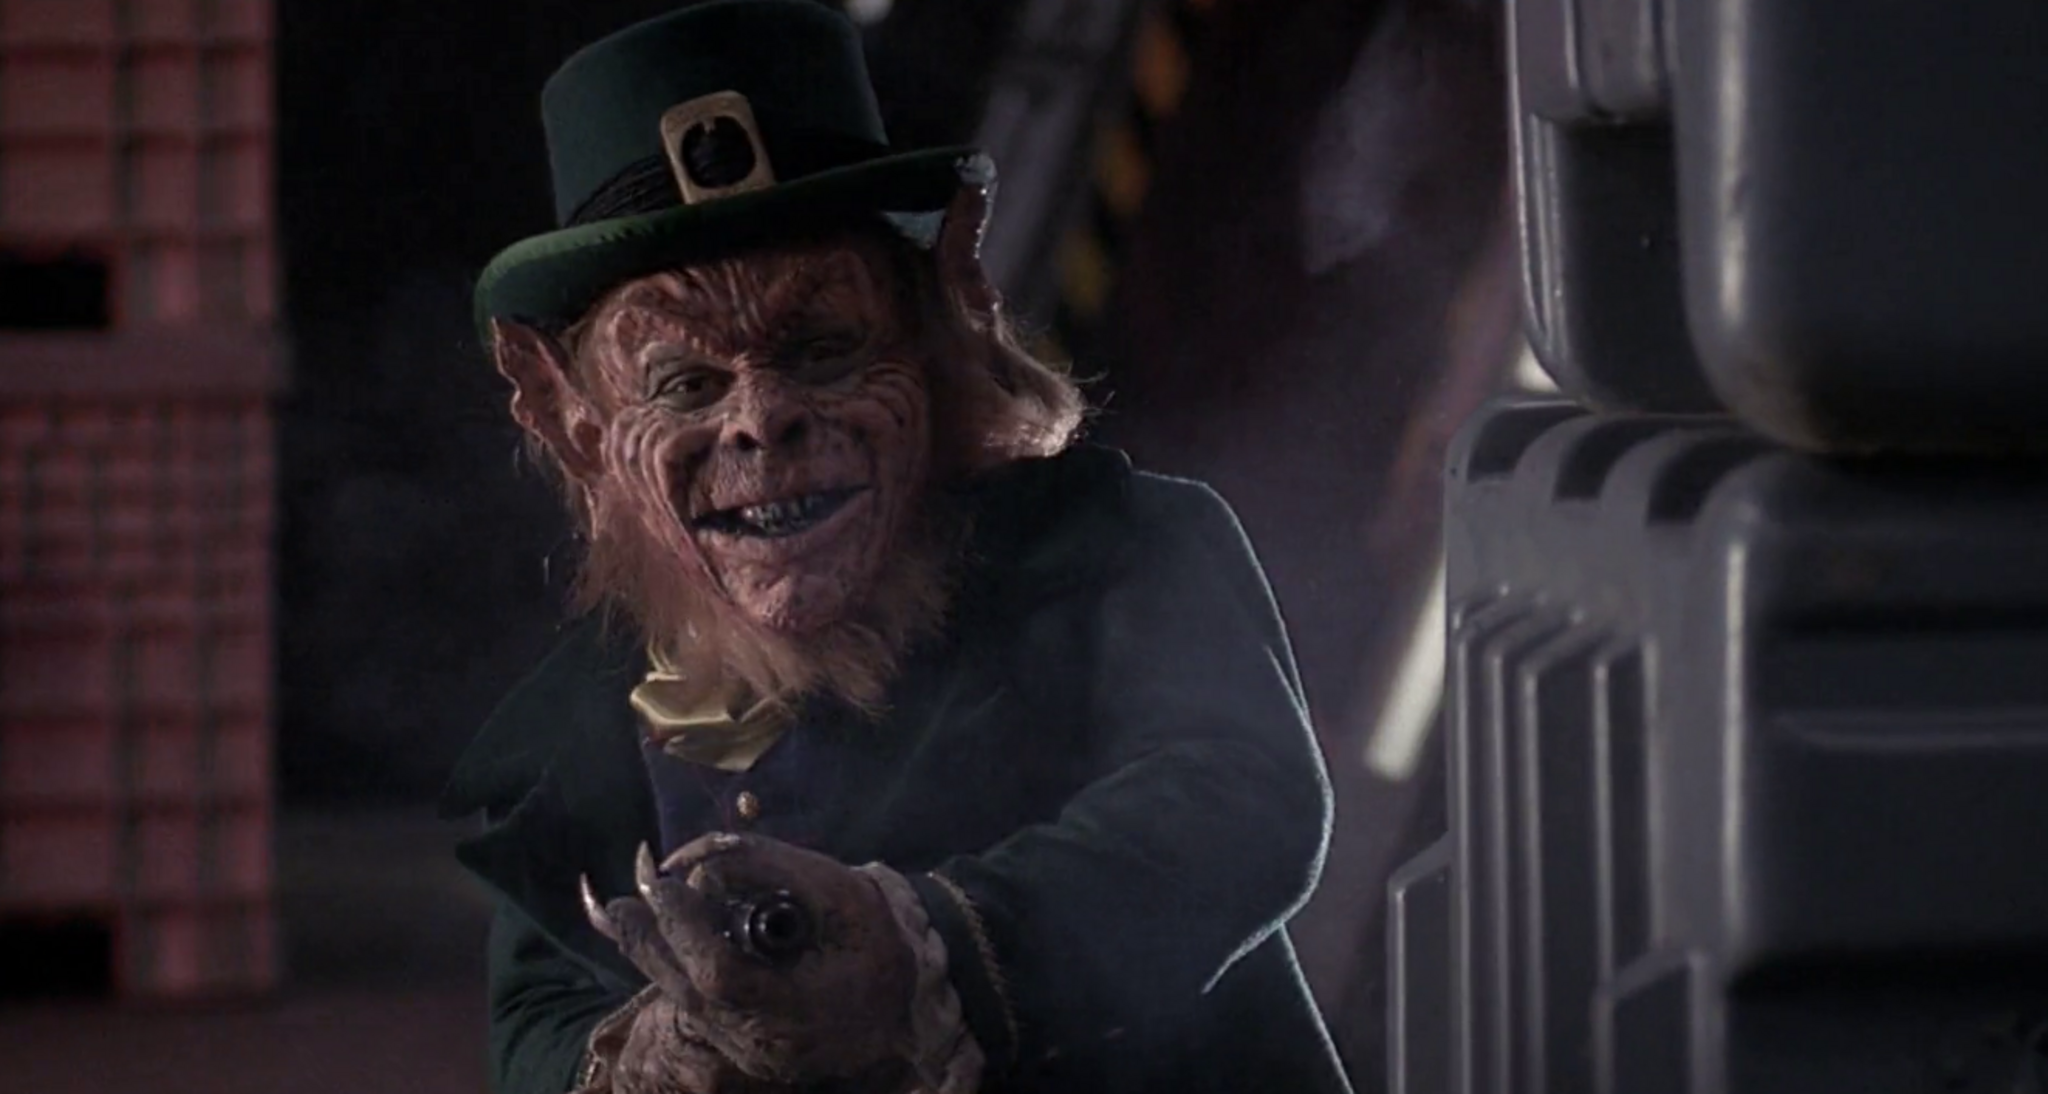 Blind Eye Movie Club Presents Leprechaun In Space